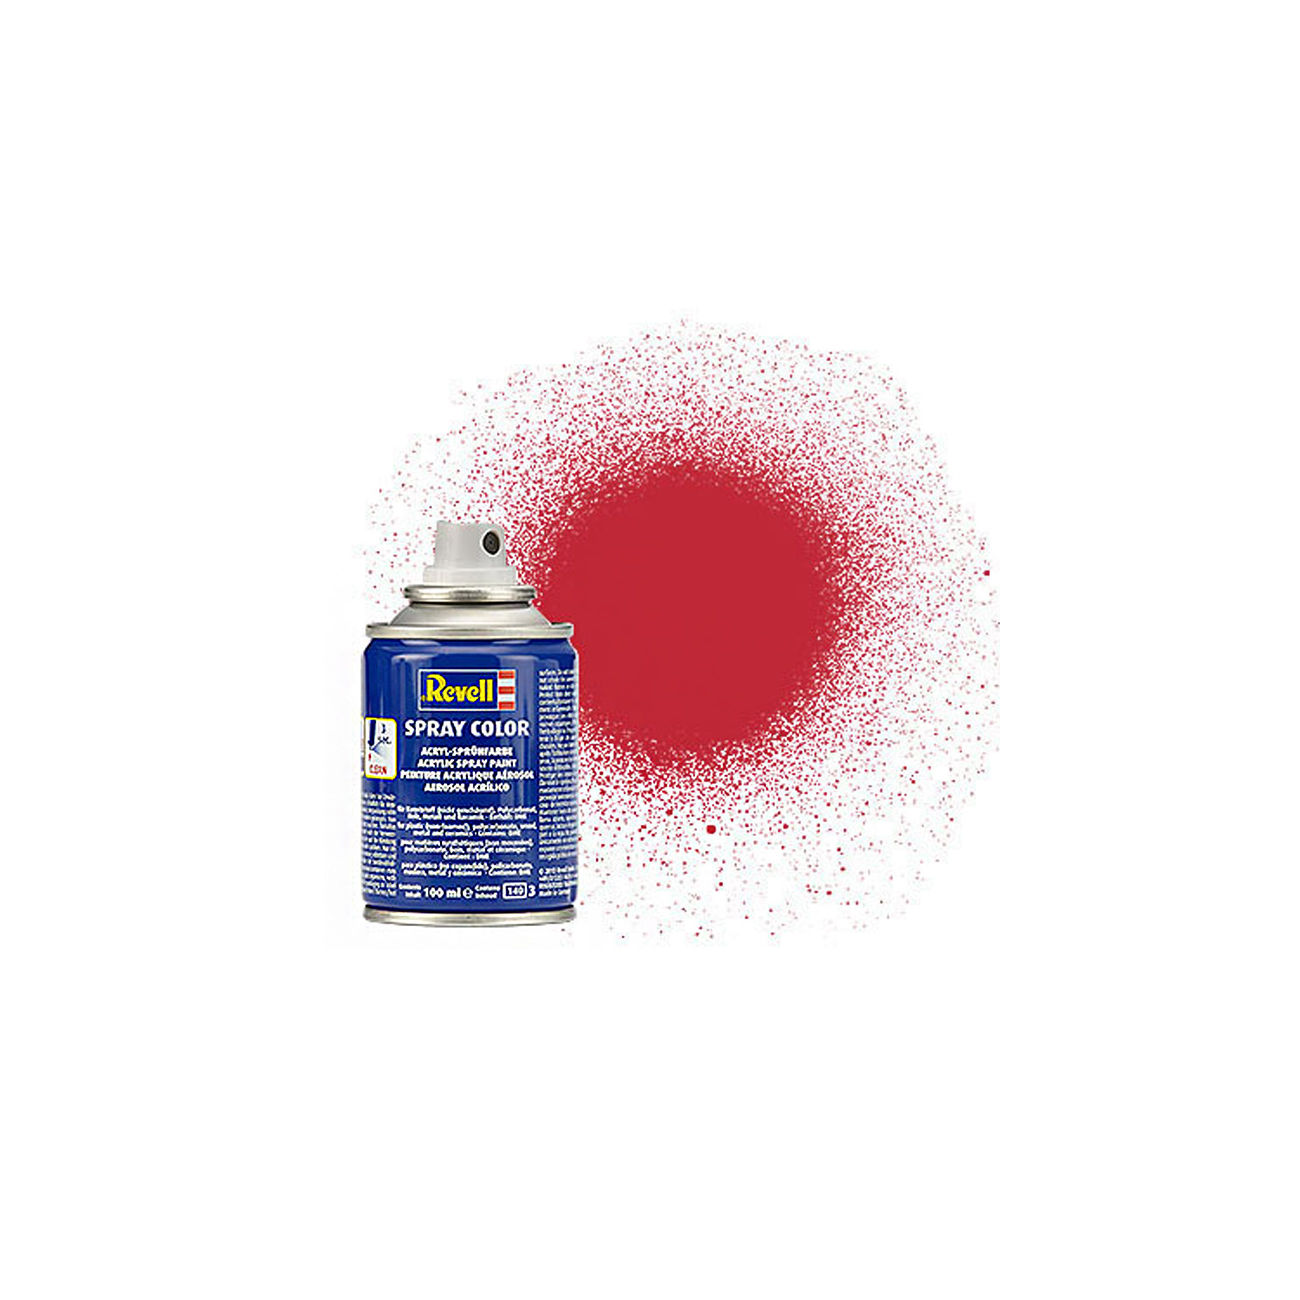 Revell Acryl Spray Color Sprühdose Kaminrot matt 100ml 34136 0